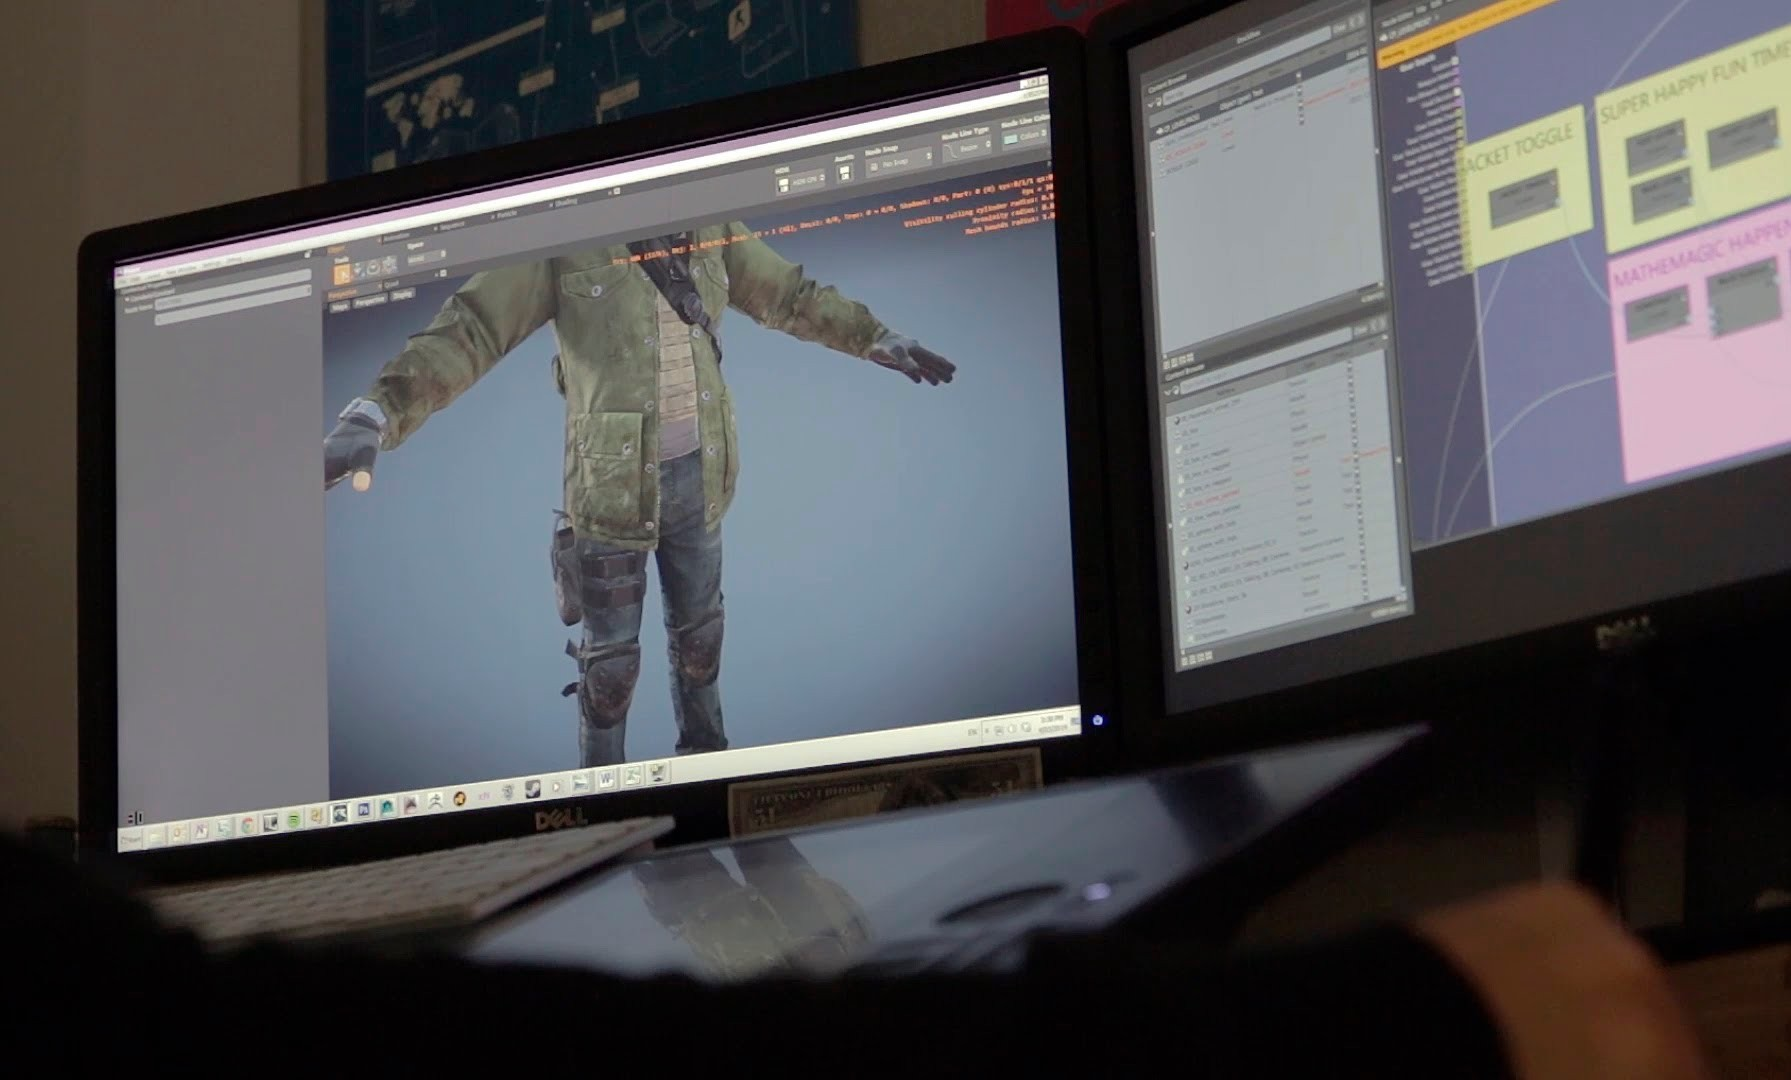 EL EFECTO NIEVE EN TOM CLANCY'S THE DIVISION